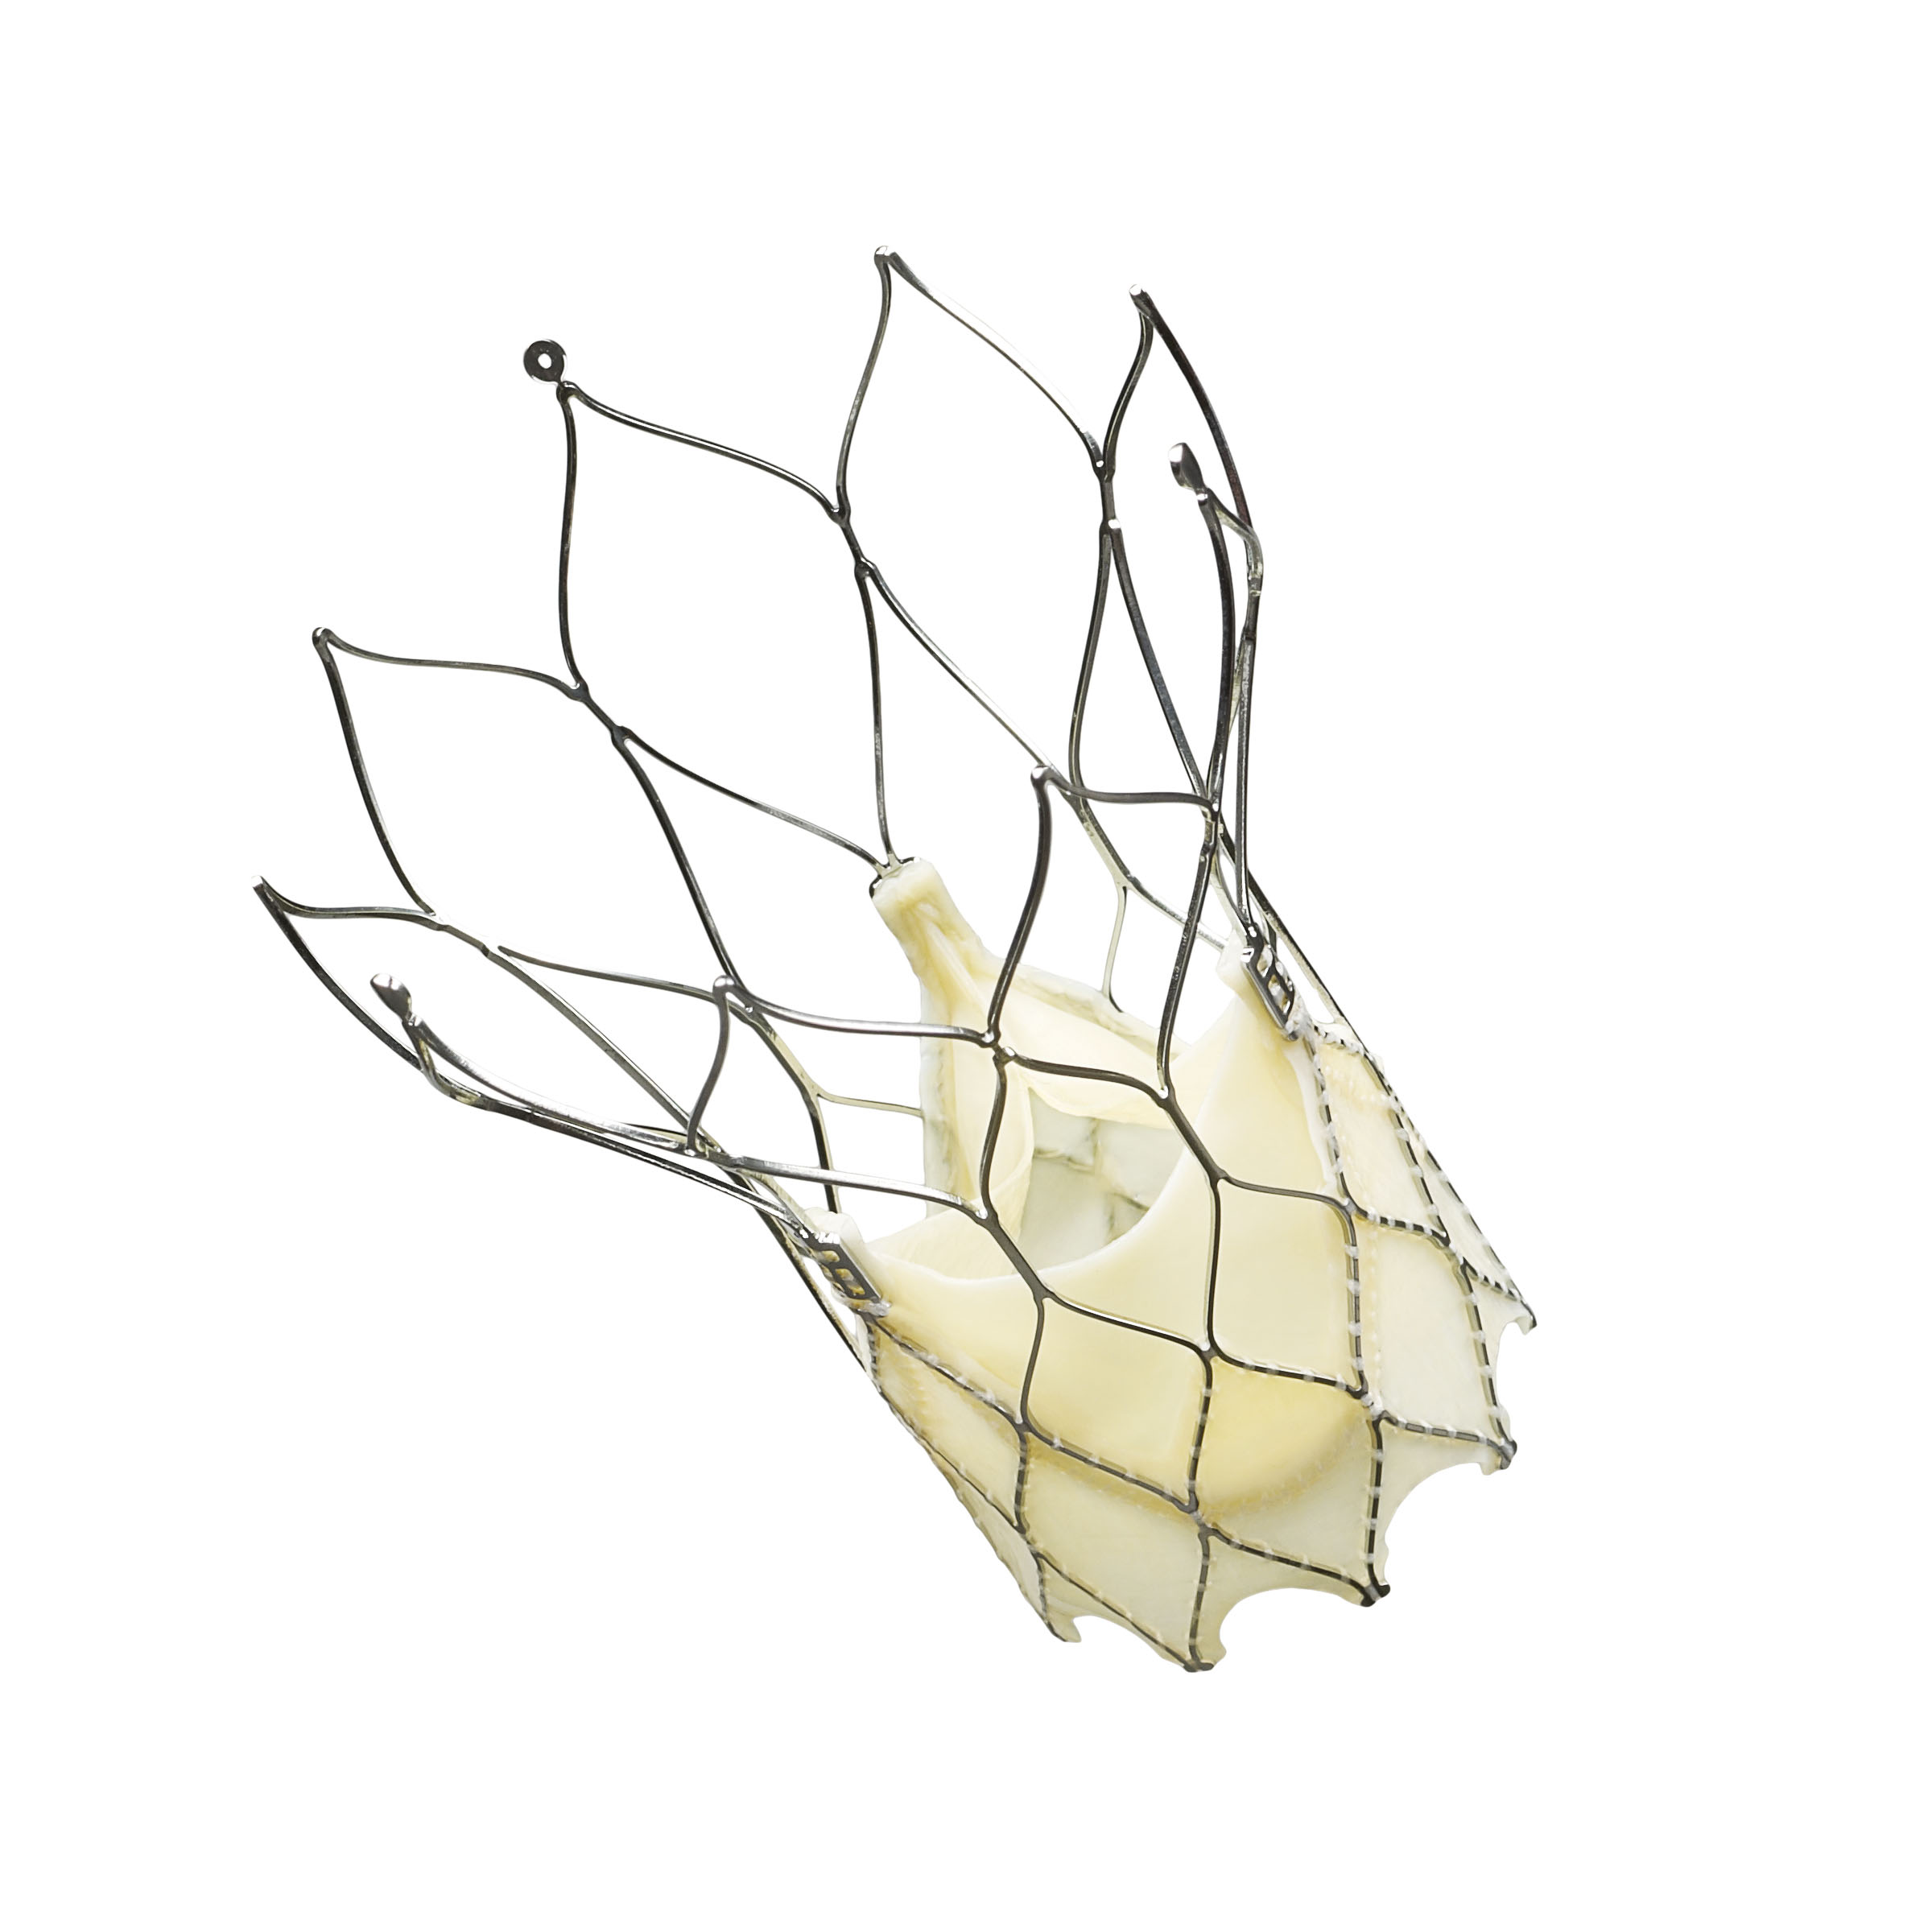 St. Jude Medical's Portico TAVI heart valve wins CE Mark